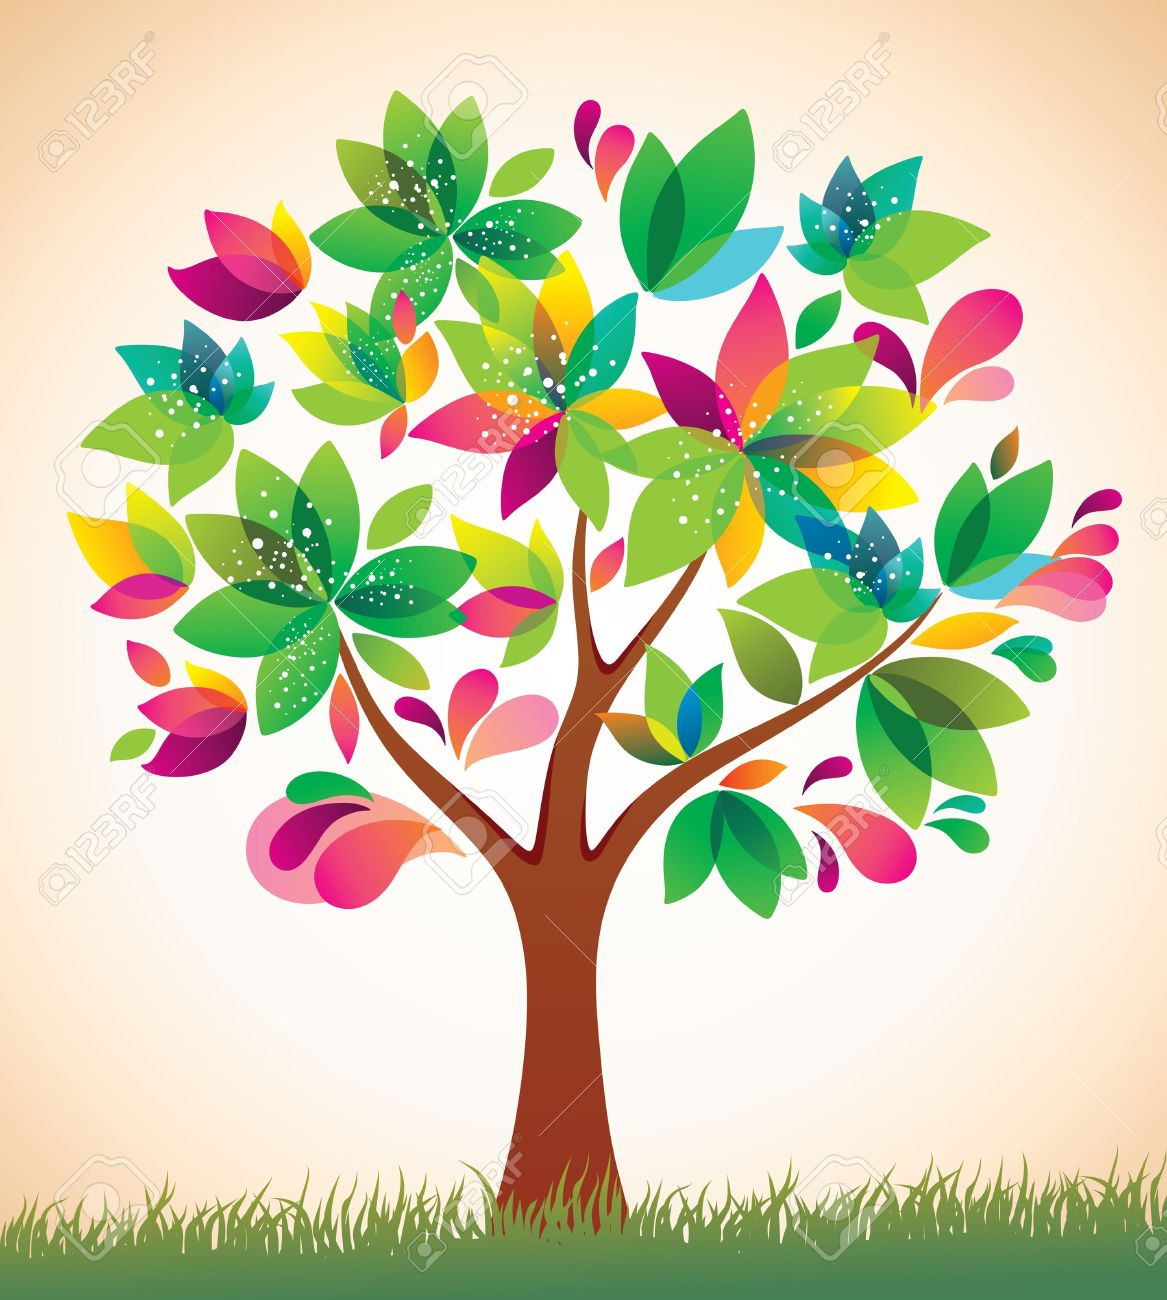 Colorful trees clipart - Clipground